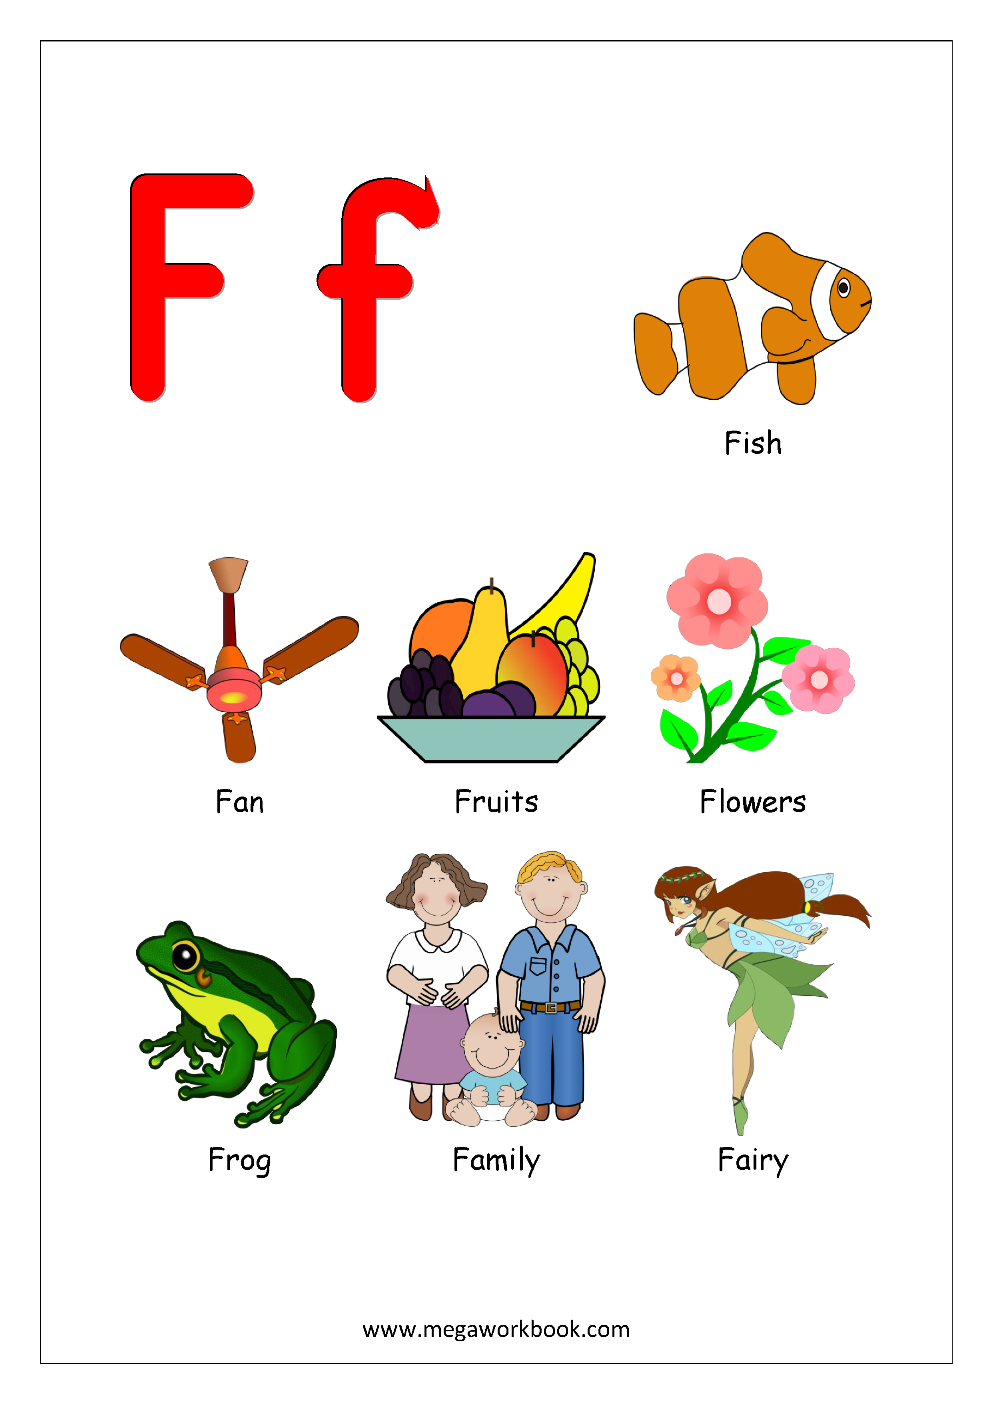 Free English Worksheets - Alphabet Reading - MegaWorkbook